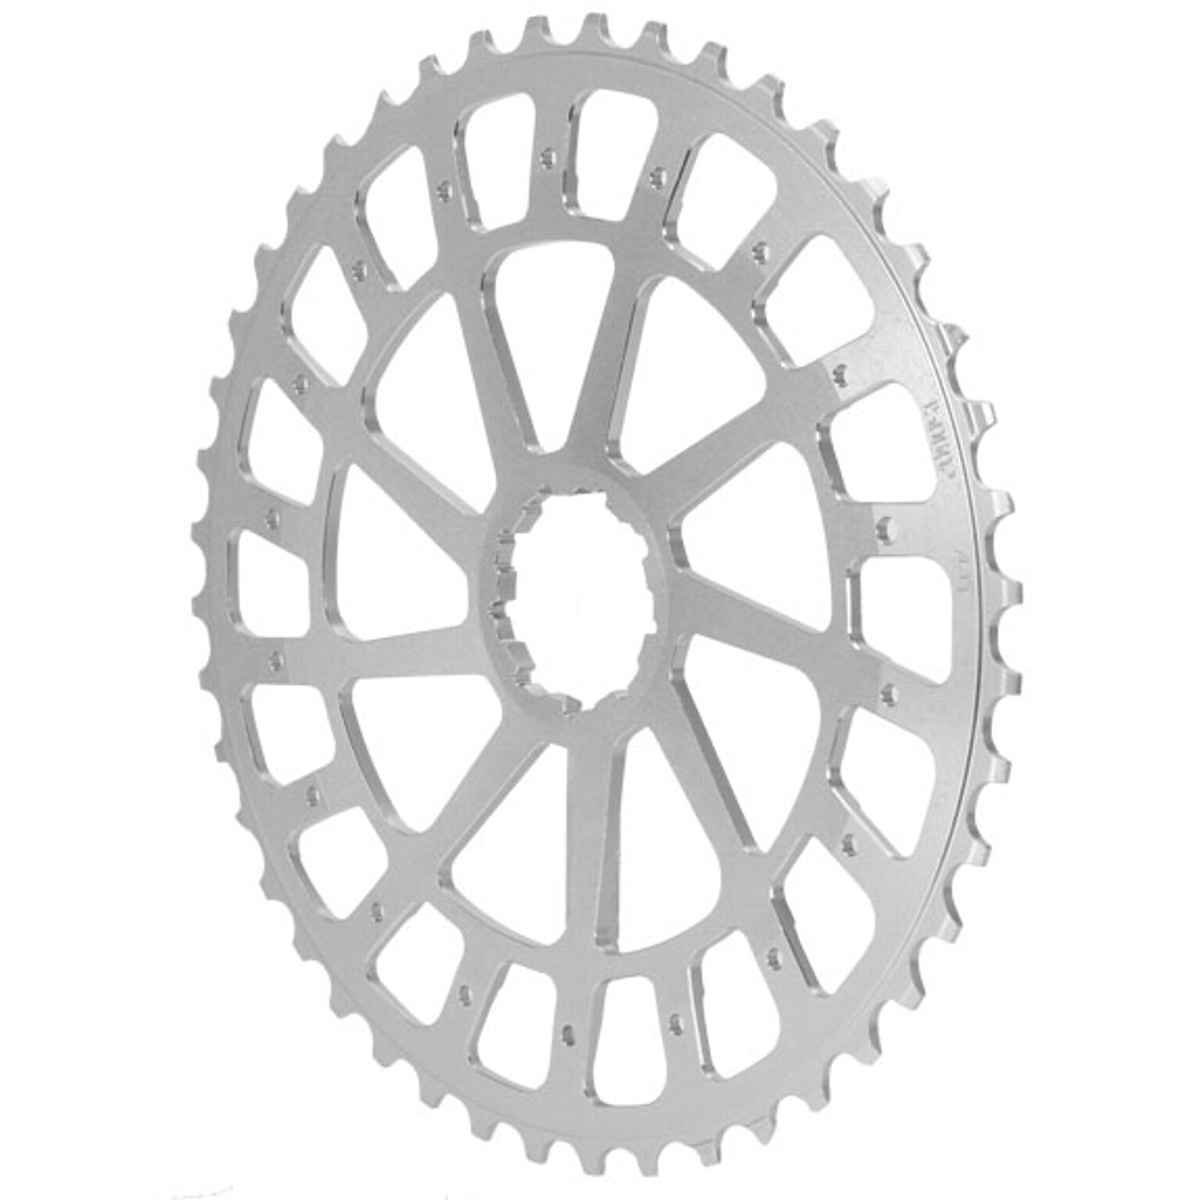 Wolf Tooth Components GCX XX1 Replacement Cog 44T, Silver by Wolf Tooth Components   B00Z70CV00